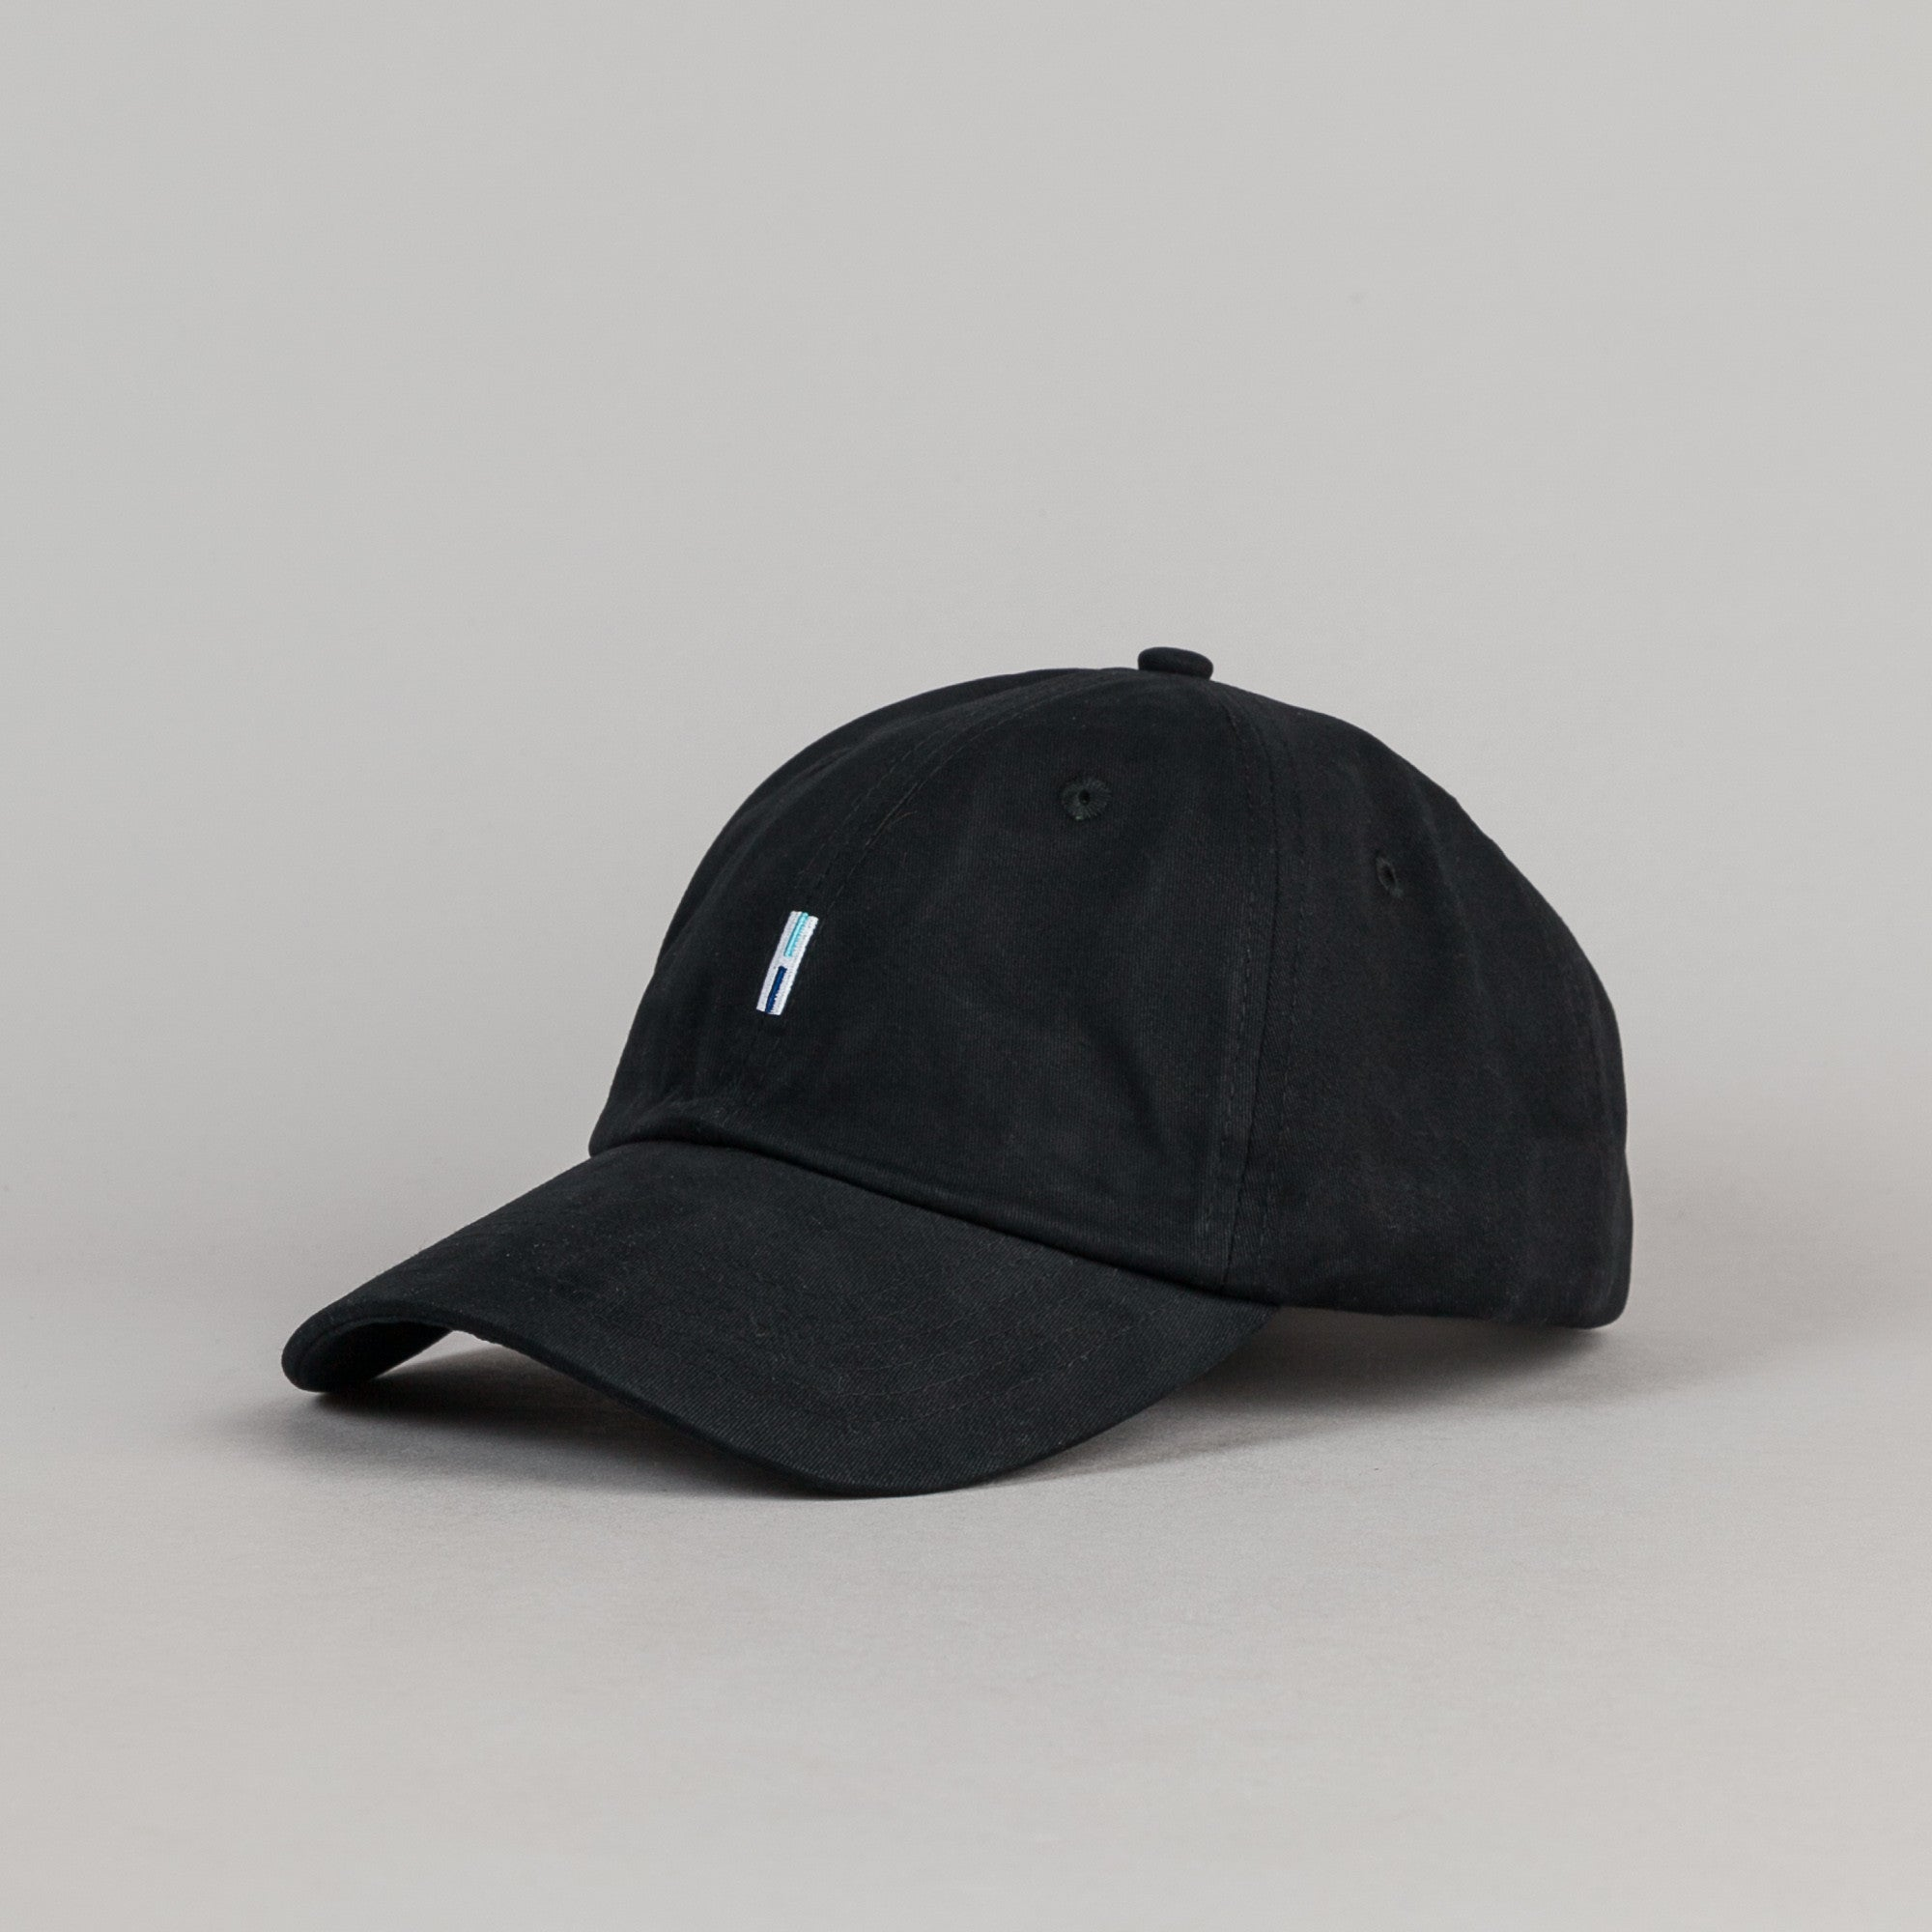 Helas H 6 Panel Cap - Black